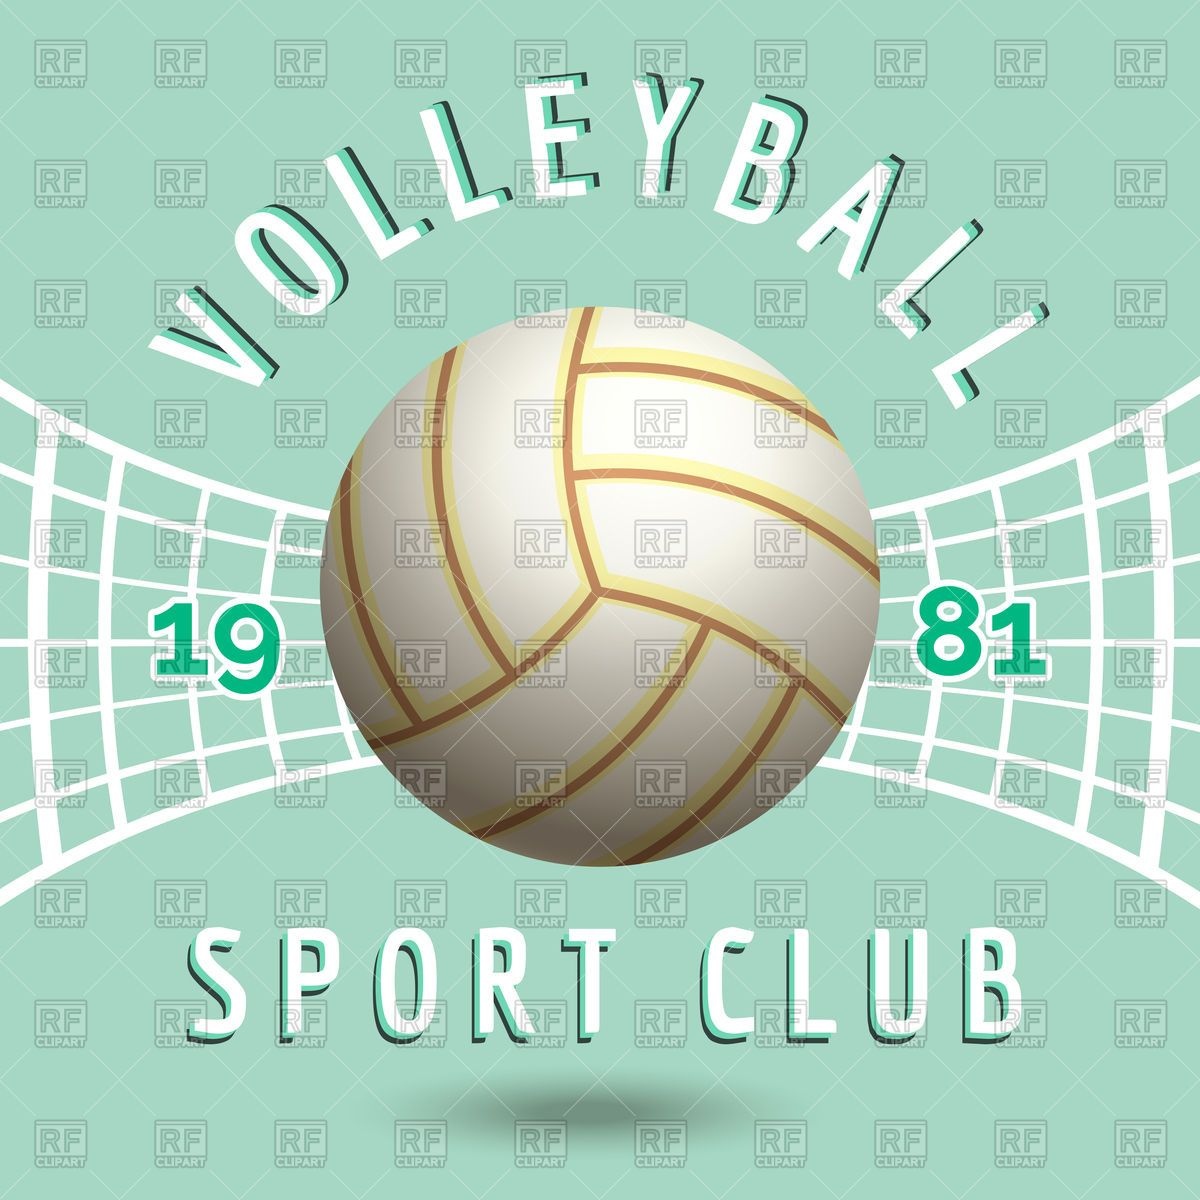 Volleyball Backgrounds Volleyball Wallpaper Volleyball Backgrounds Mens Volleyball